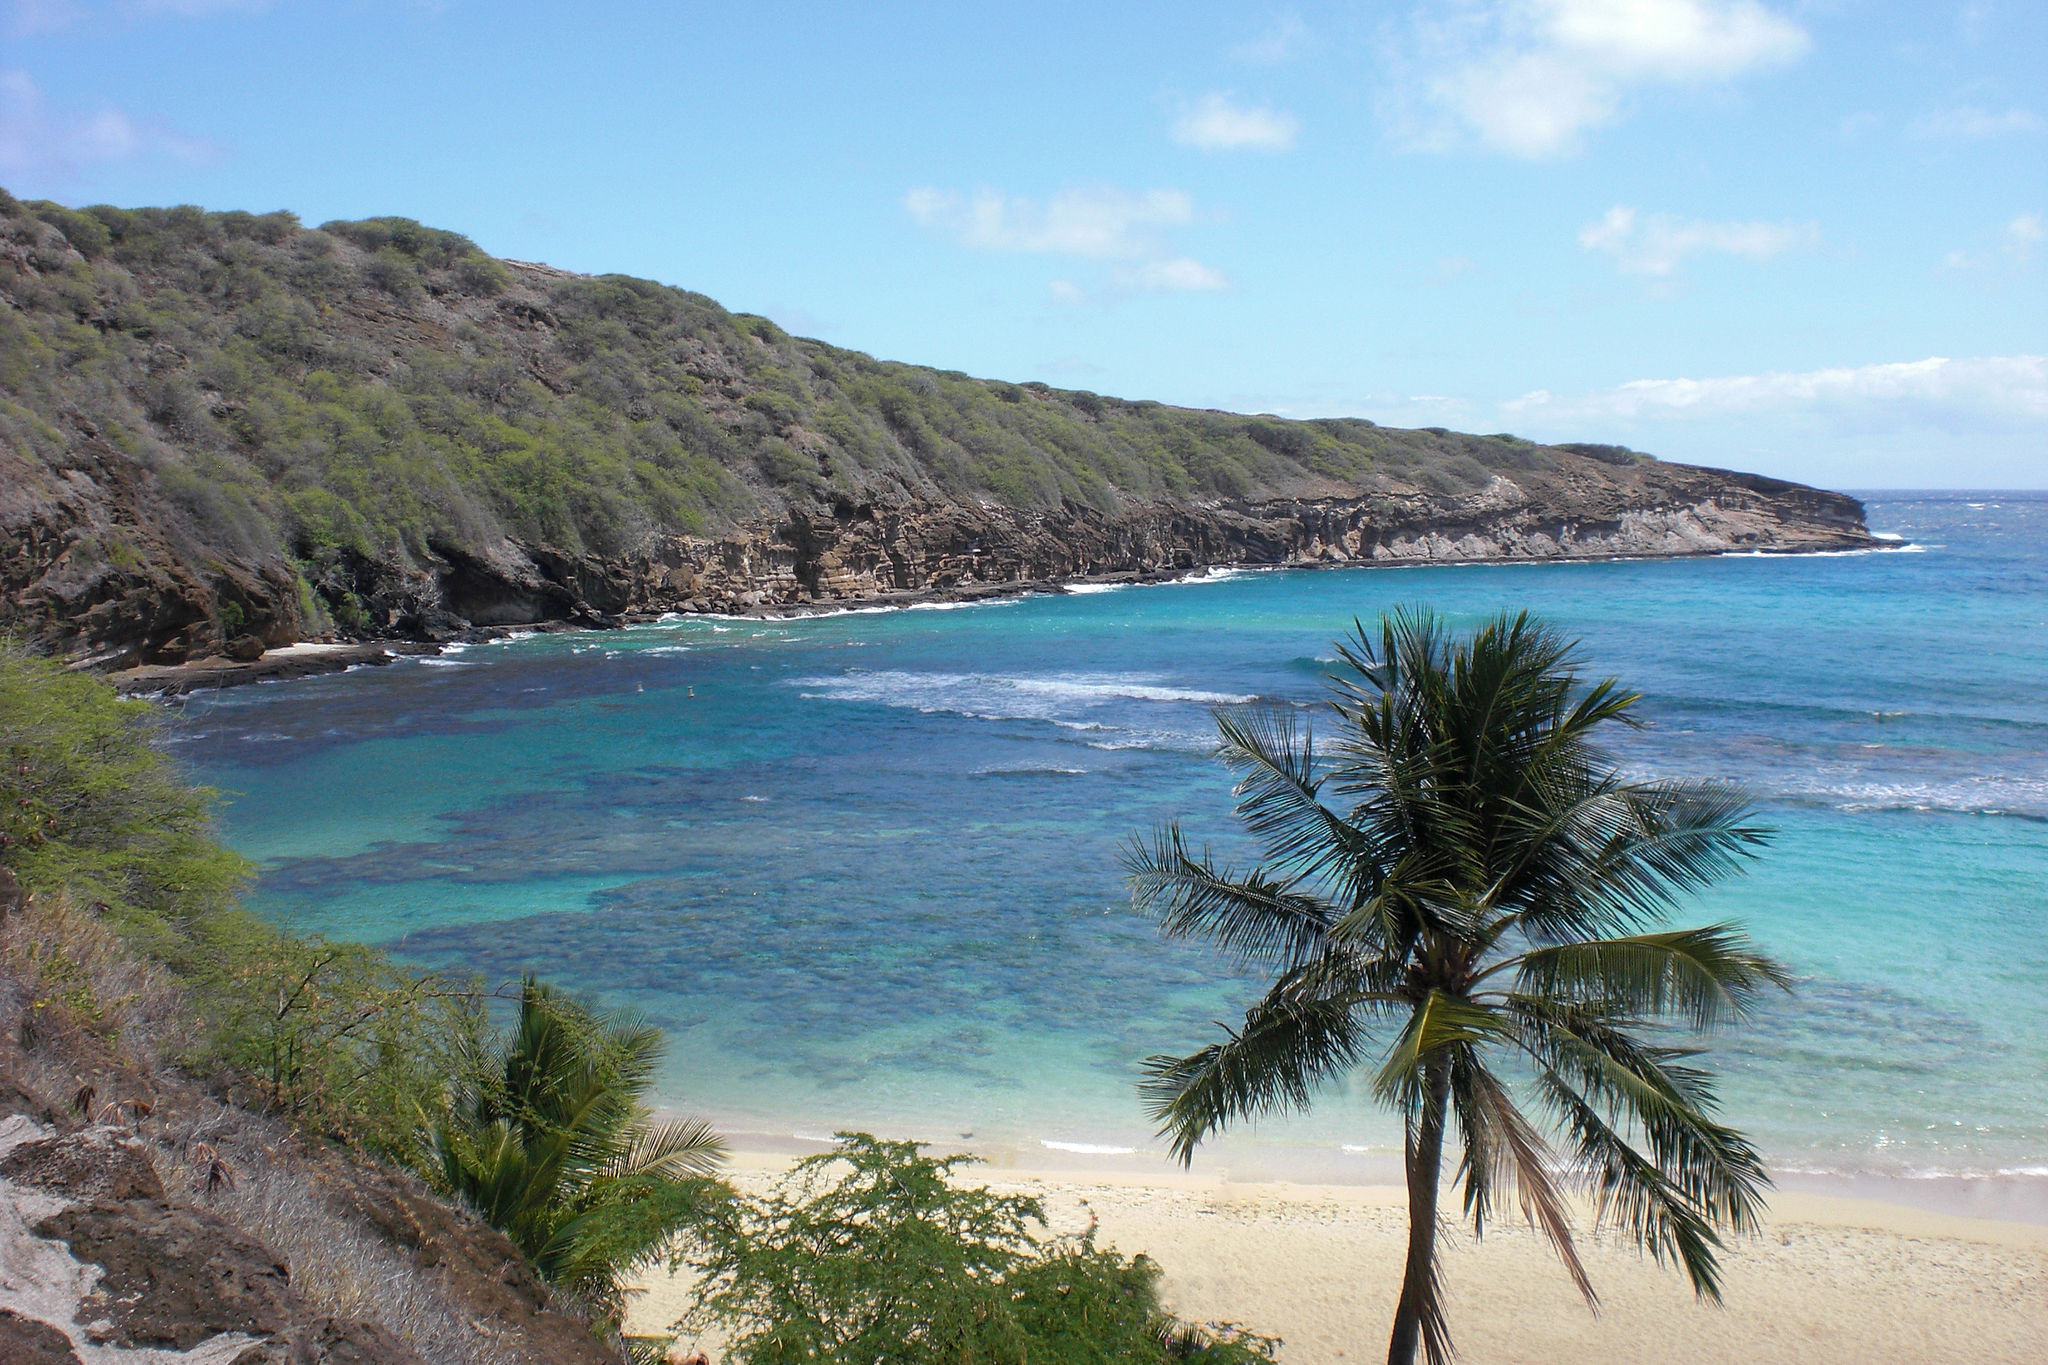 image Hanauma Bay Oahu Hawaii 1920x1080p HD Travel Wallpaper 2048x1365